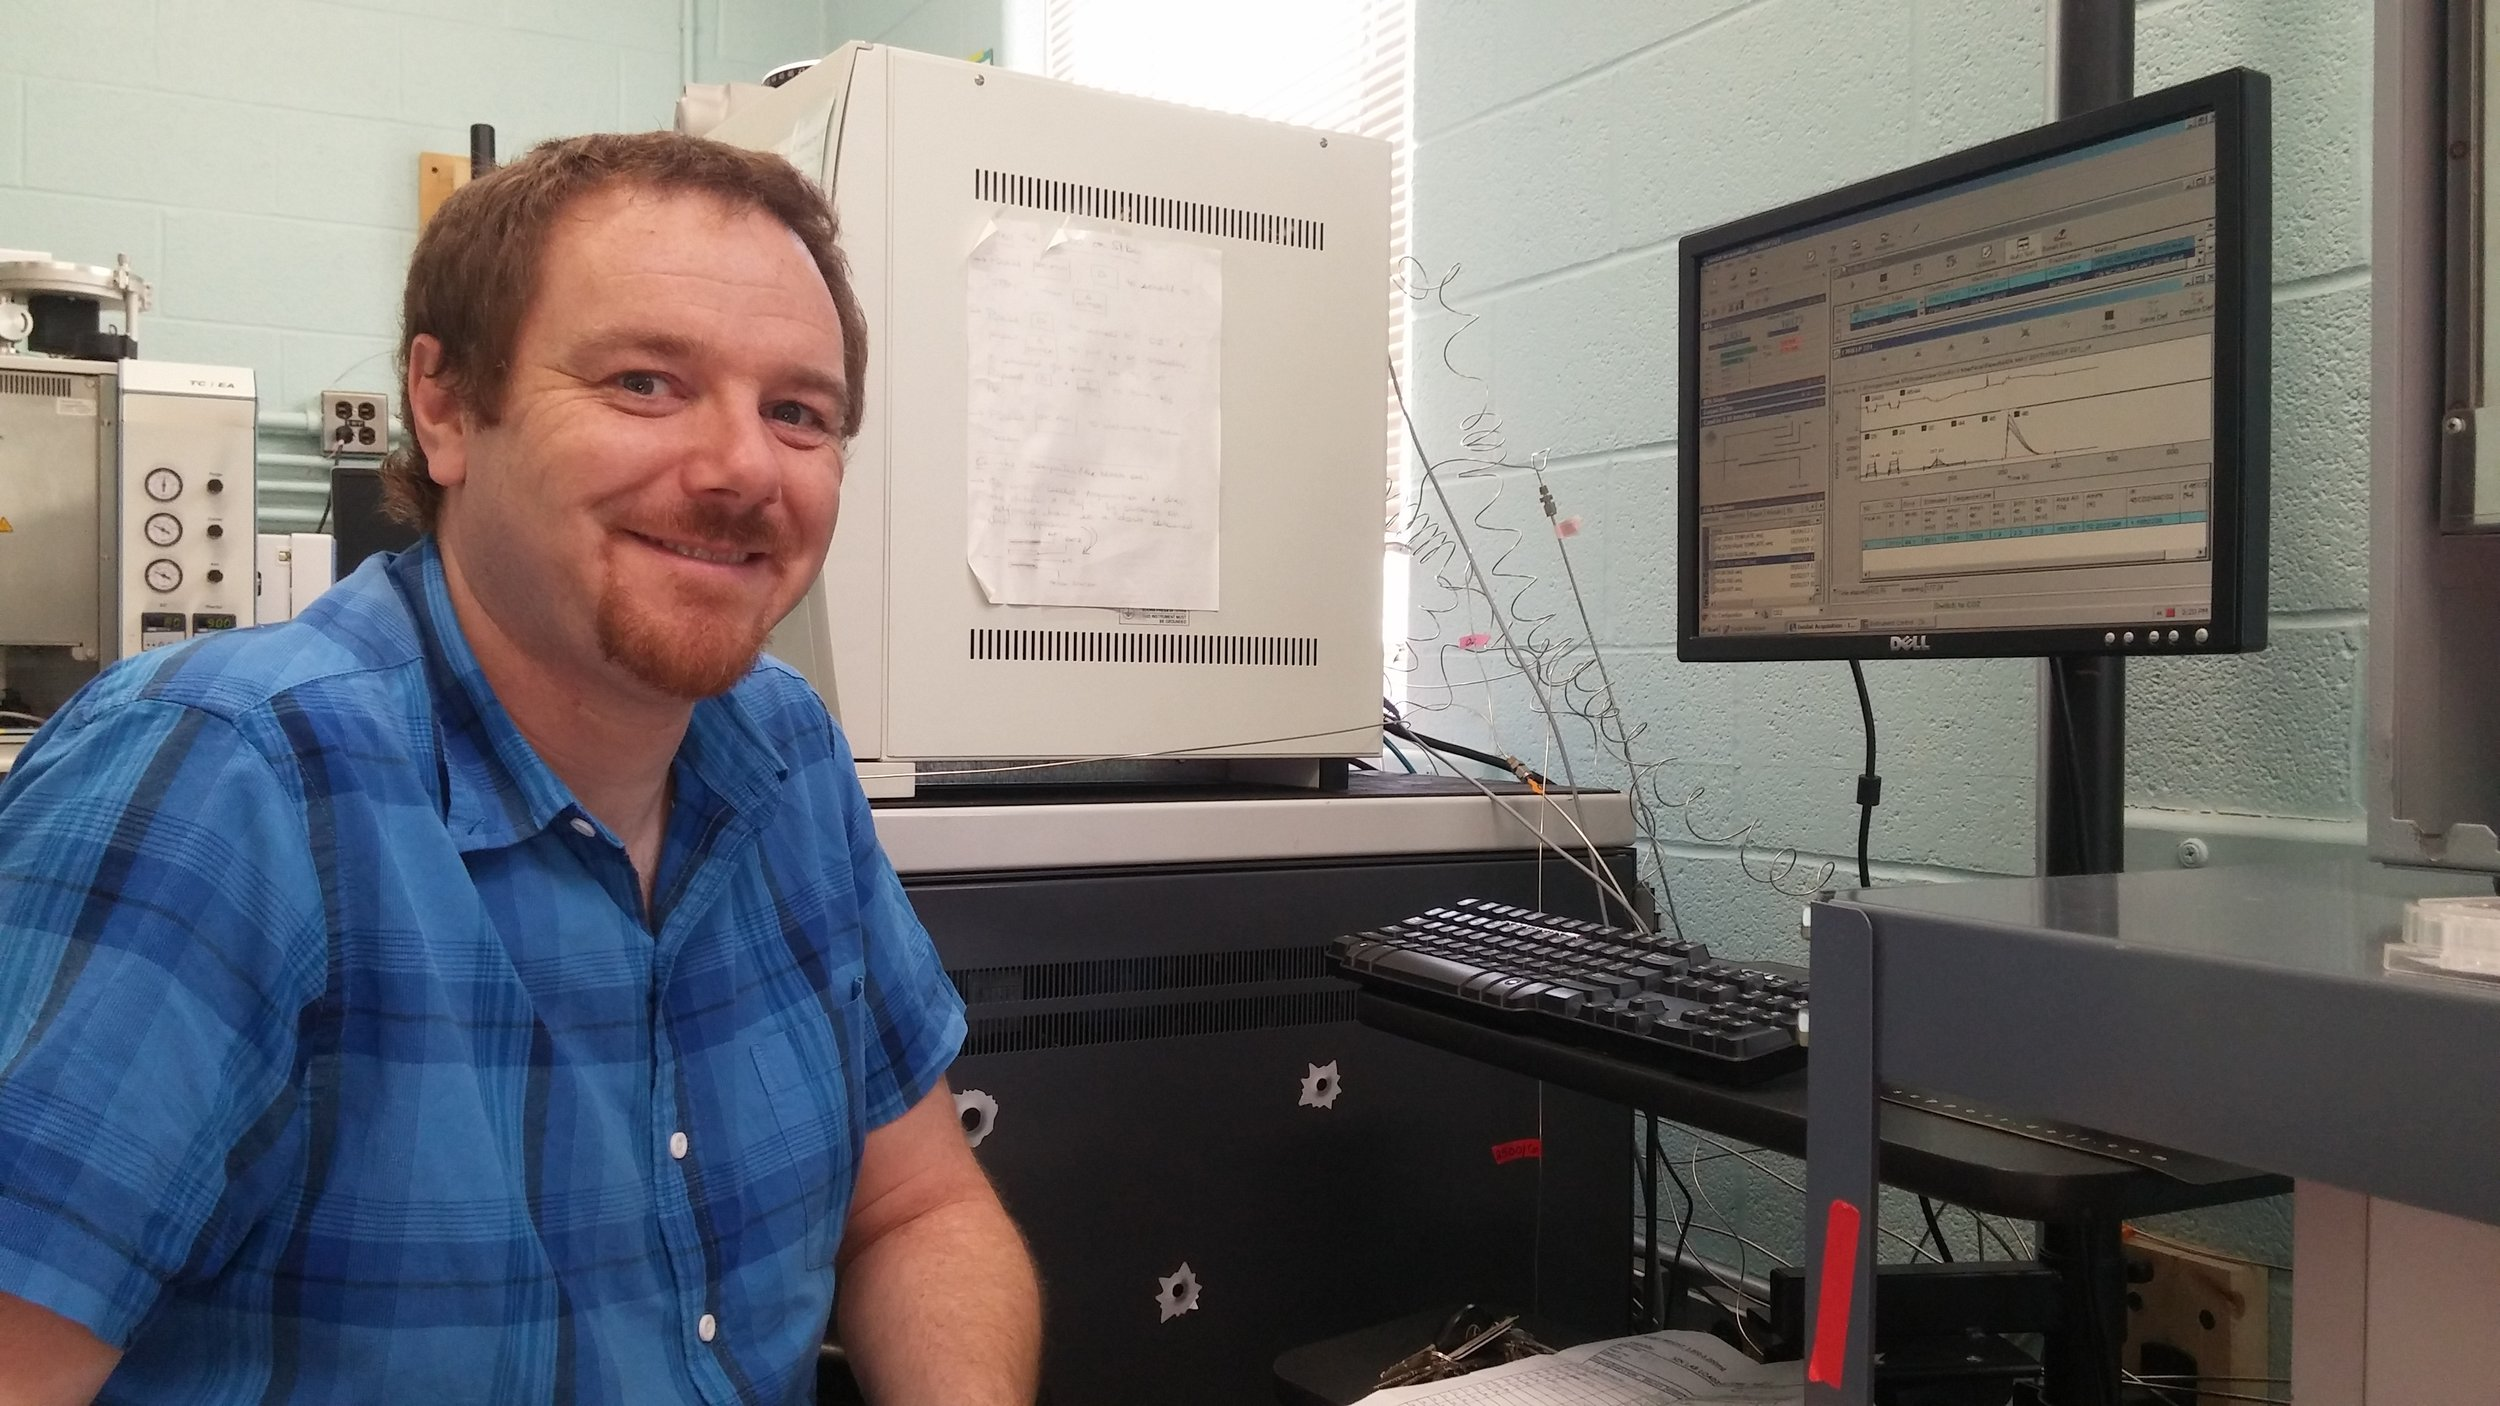 Dr. Brian Hayden, CRI at UNB postdoctoral fellow and SINLAB Science Manager, reviews recent isotope analysis data